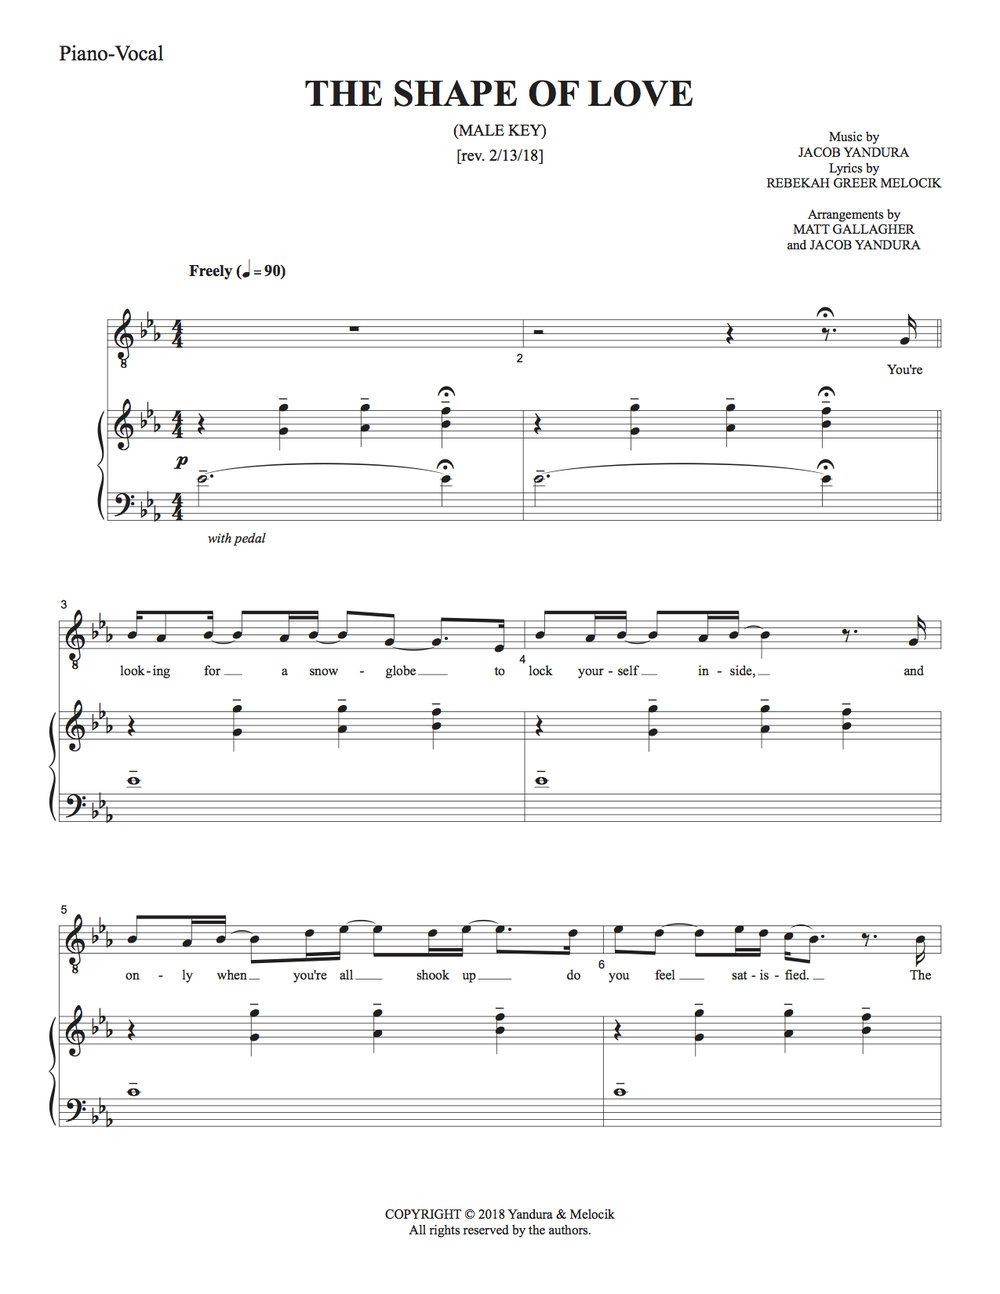 THE SHAPE OF LOVE - MALE KEY  Male solo, ballad, pop, baritenor Eb3-G4